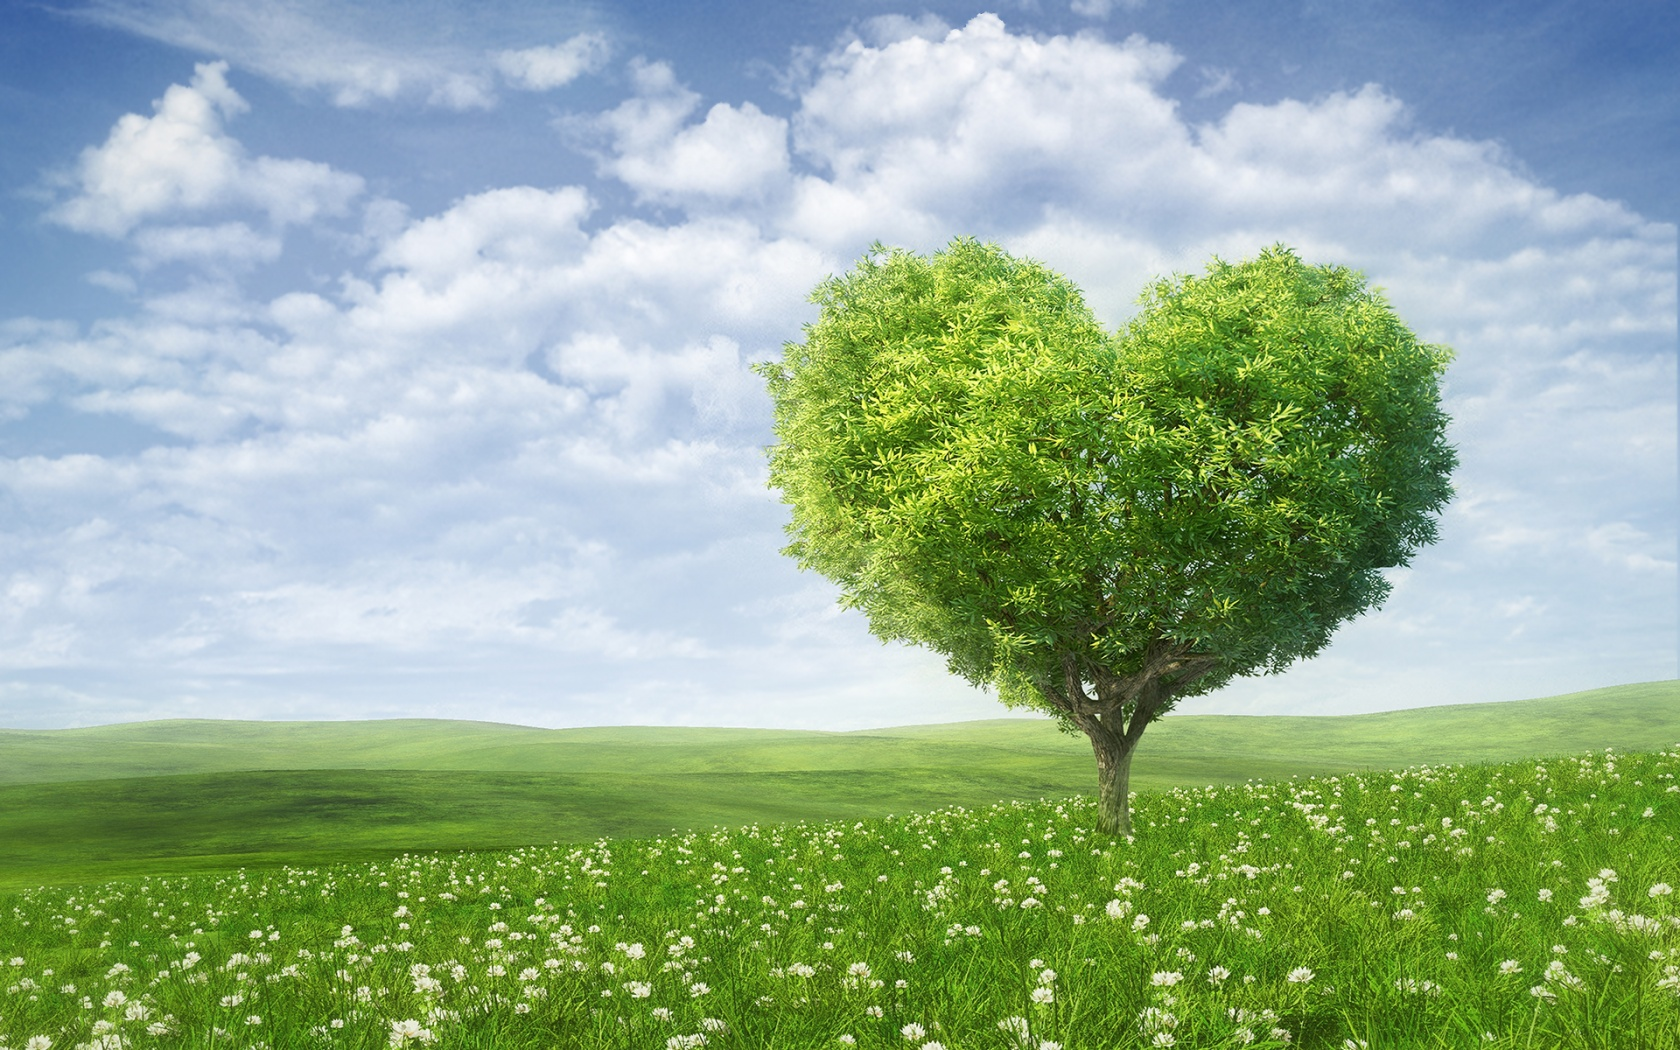 Description: The Wallpaper above is Summer heart tree Wallpaper in Resolution 1680x1050. Choose your Resolution and Download Summer heart tree Wallpaper